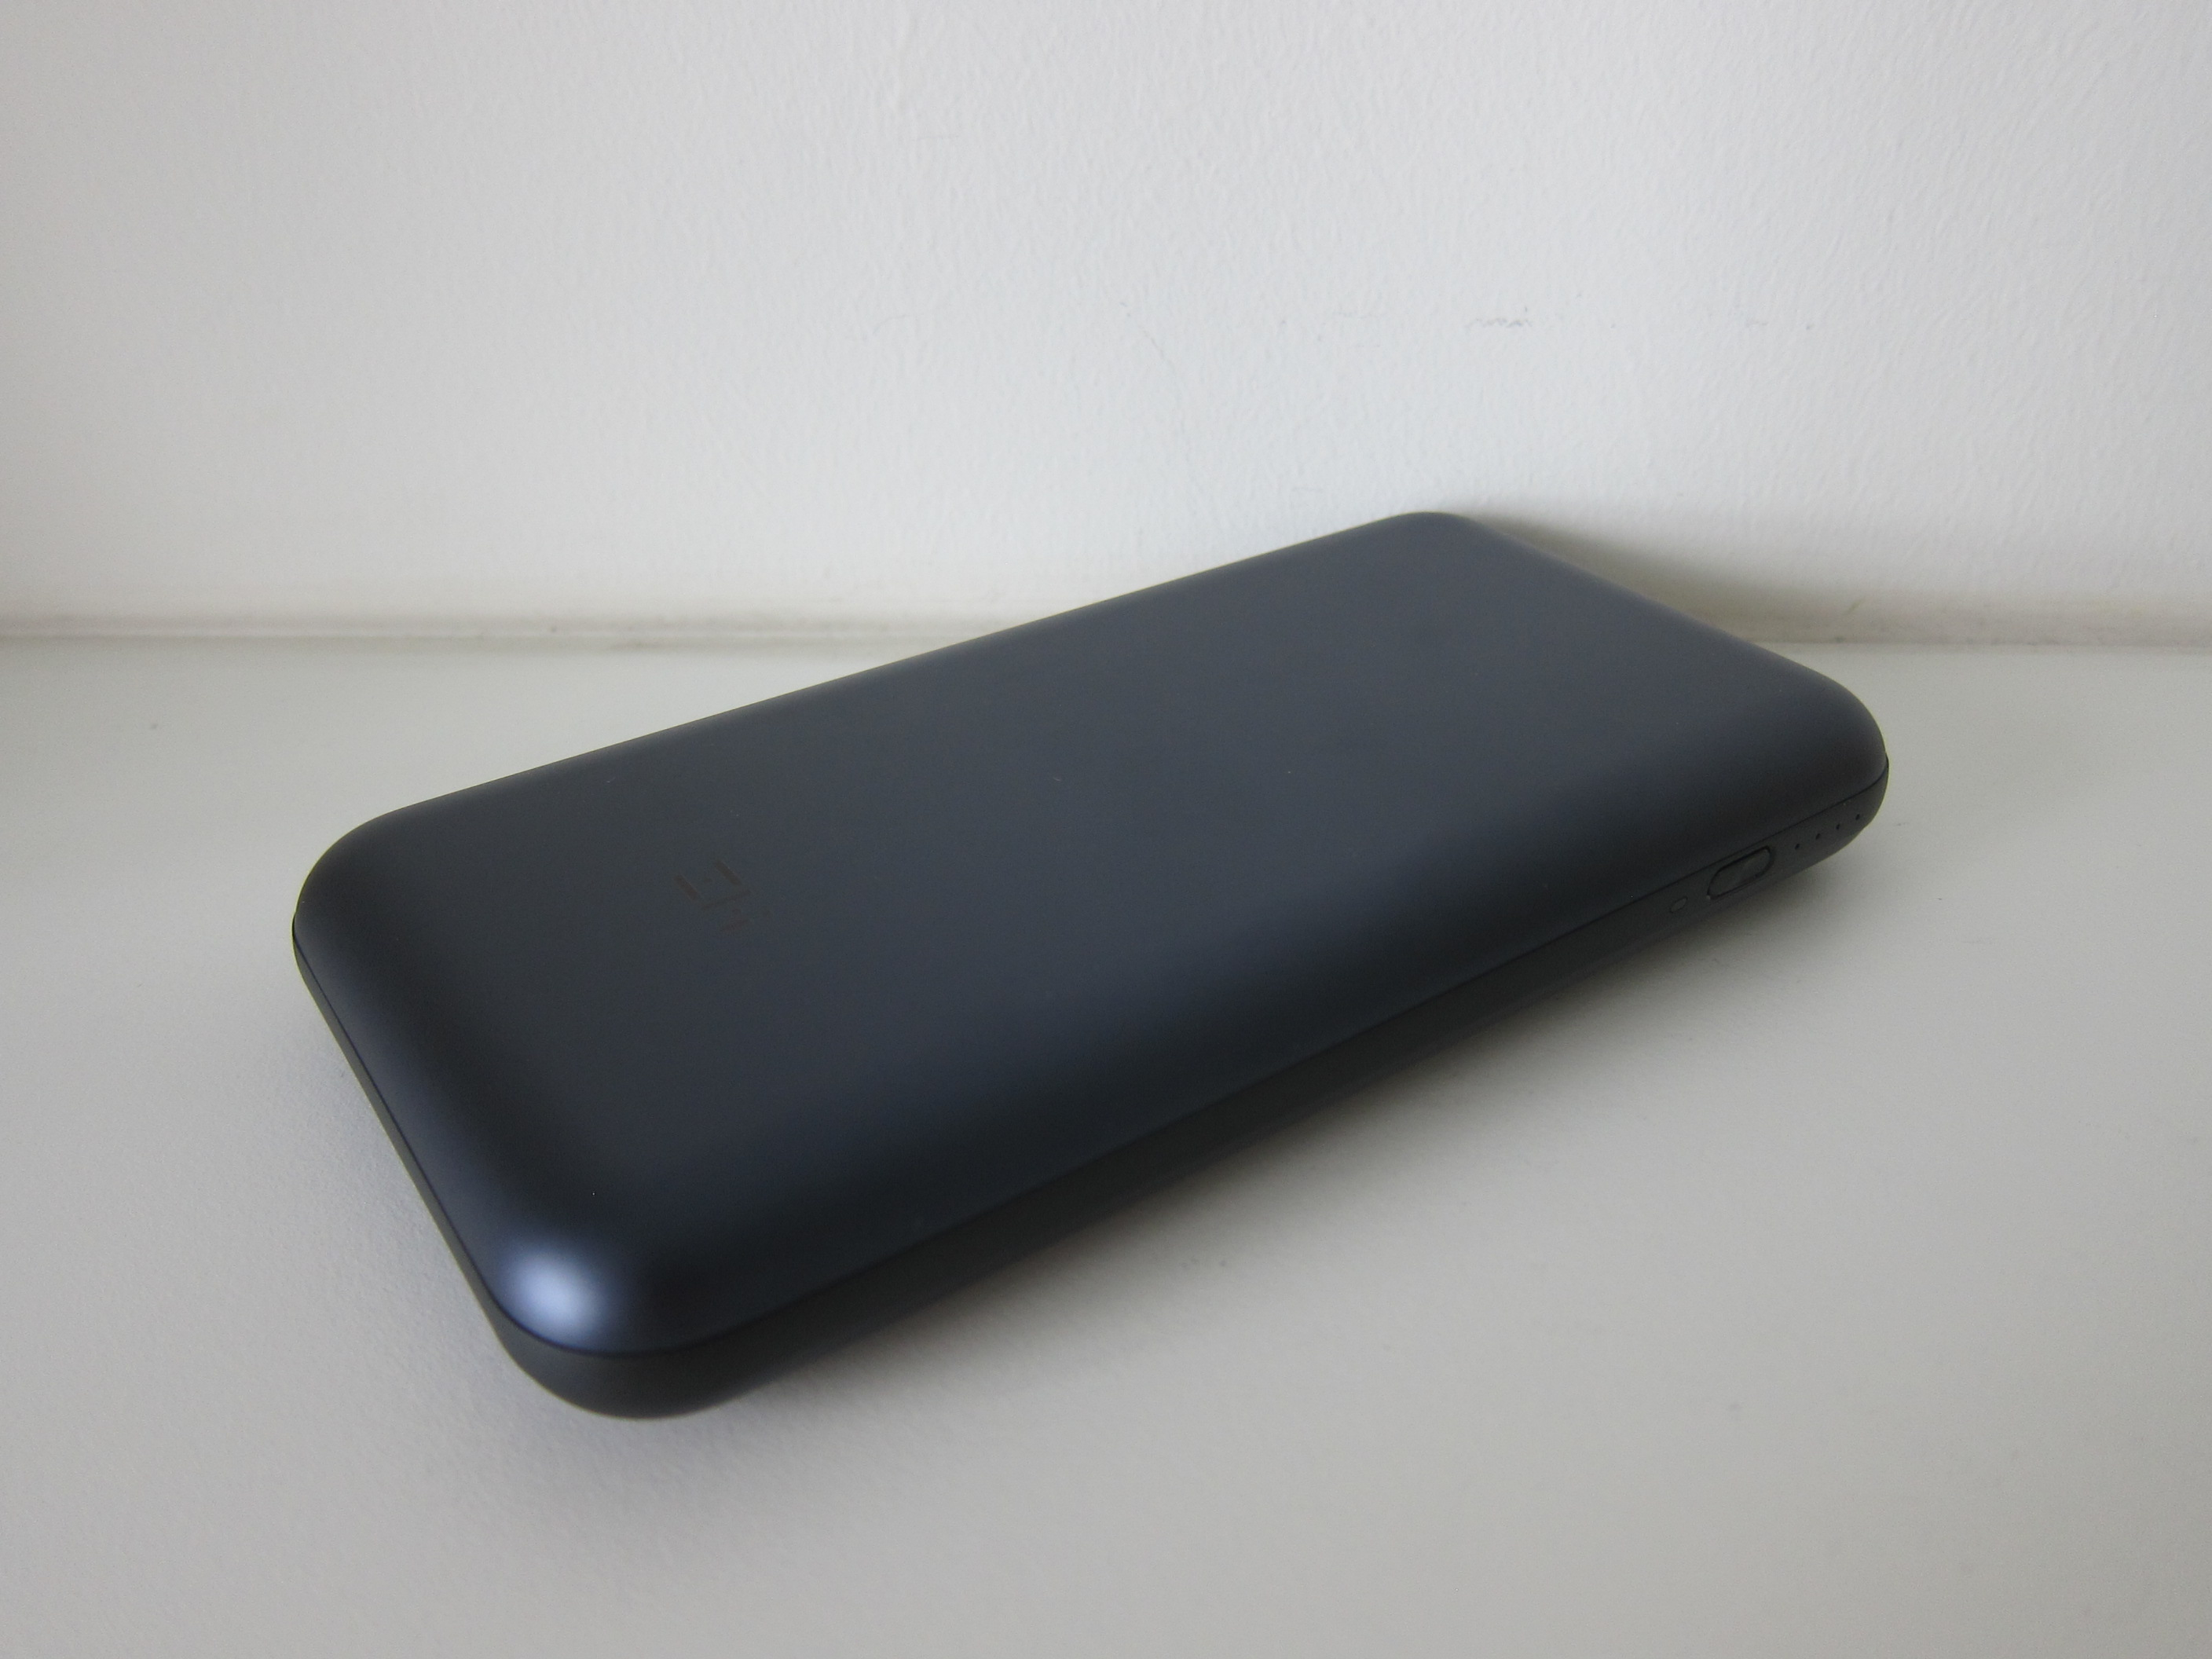 Xiaomi ZMI QB820 20 000mAh Power Bank